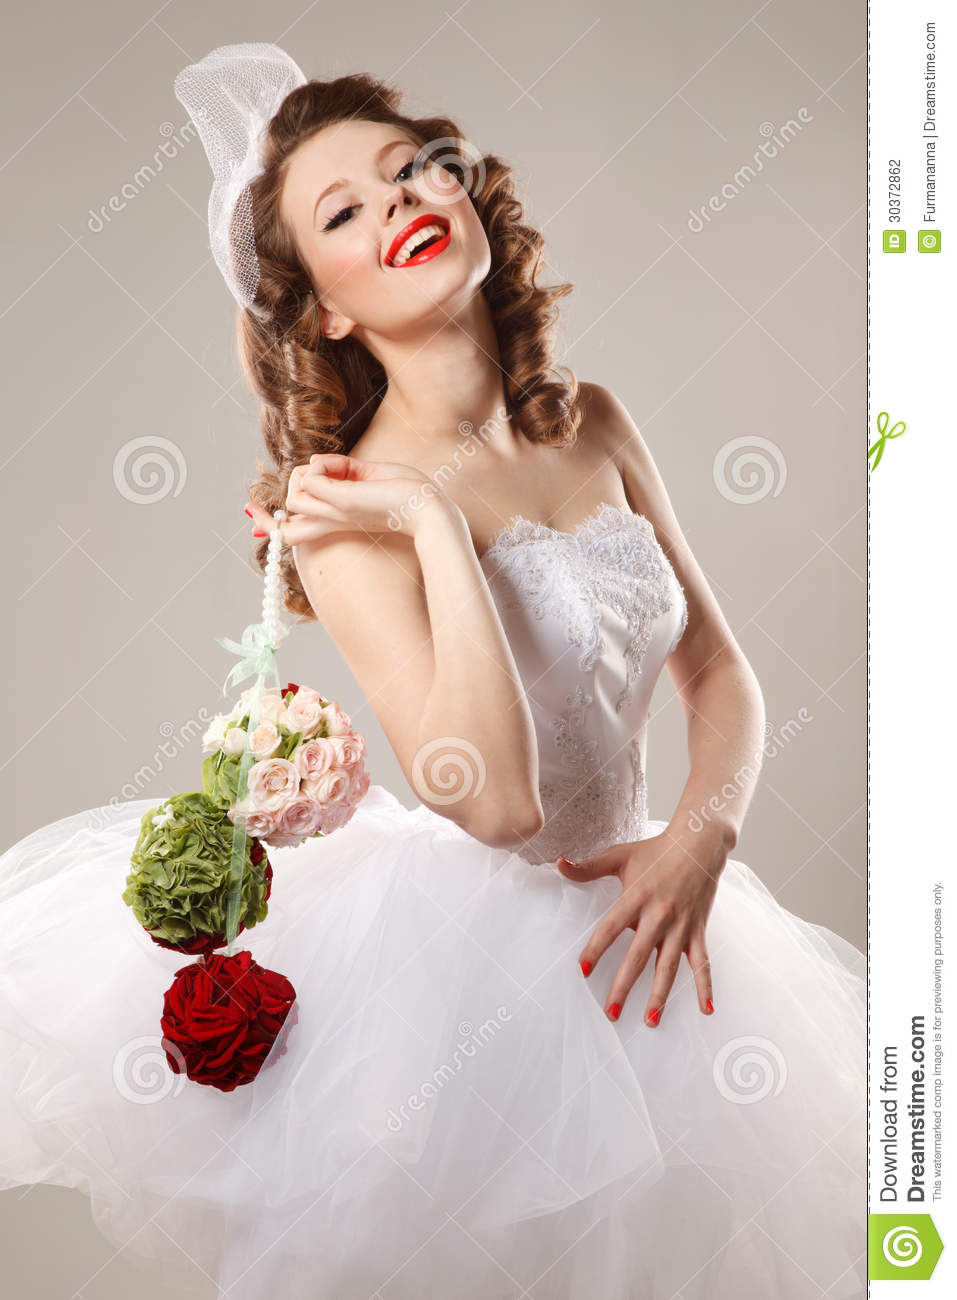 pin up bride stock photo image of glamour concepts 30372862. Black Bedroom Furniture Sets. Home Design Ideas